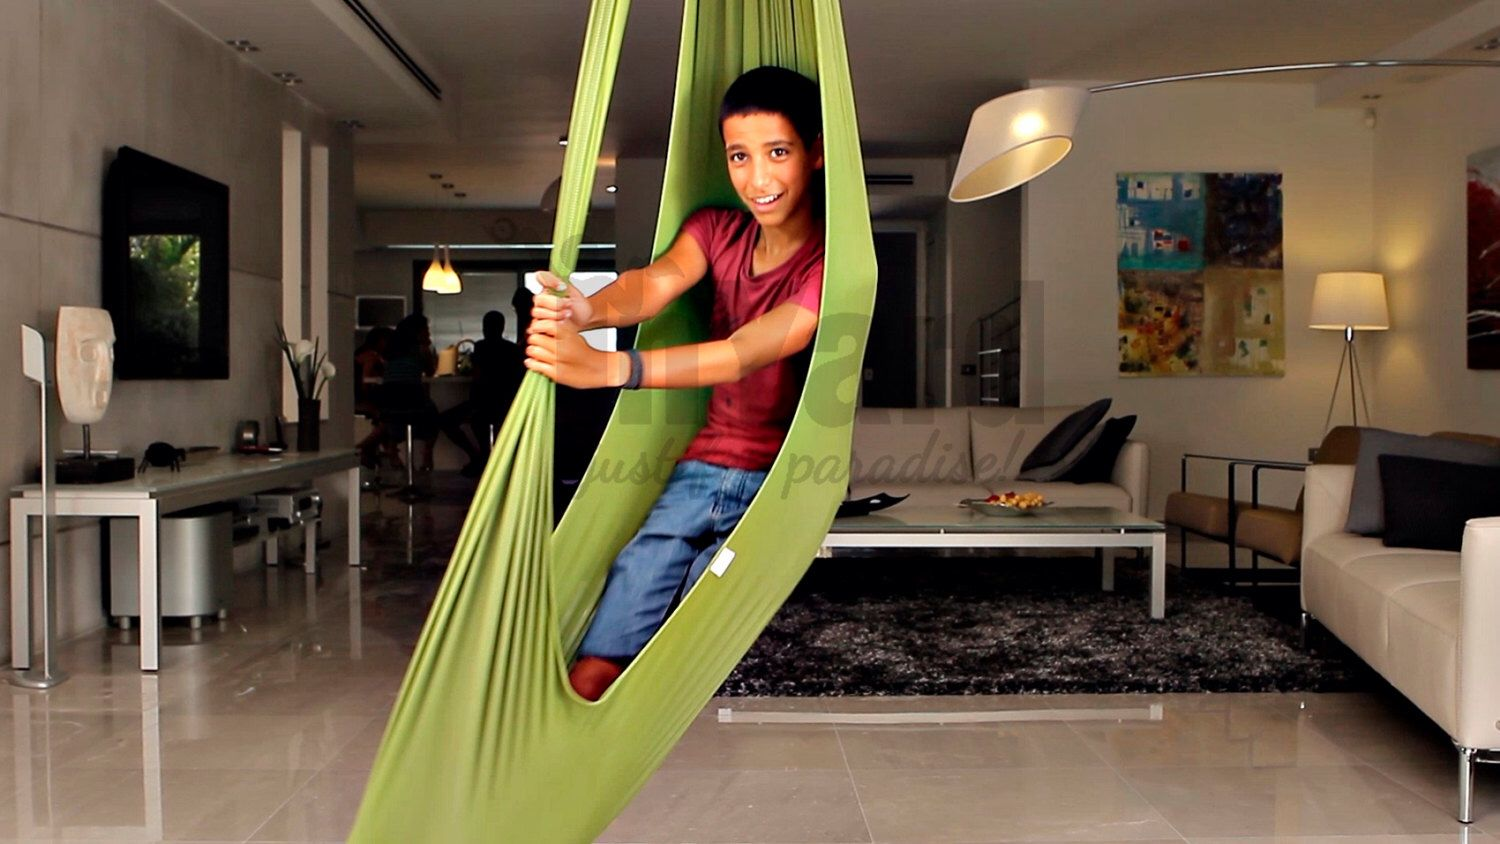 therapy hammock swing autism hammock swing fabric hammock swing for kids indoor therapy hammock swing autism hammock swing fabric hammock swing      rh   pinterest